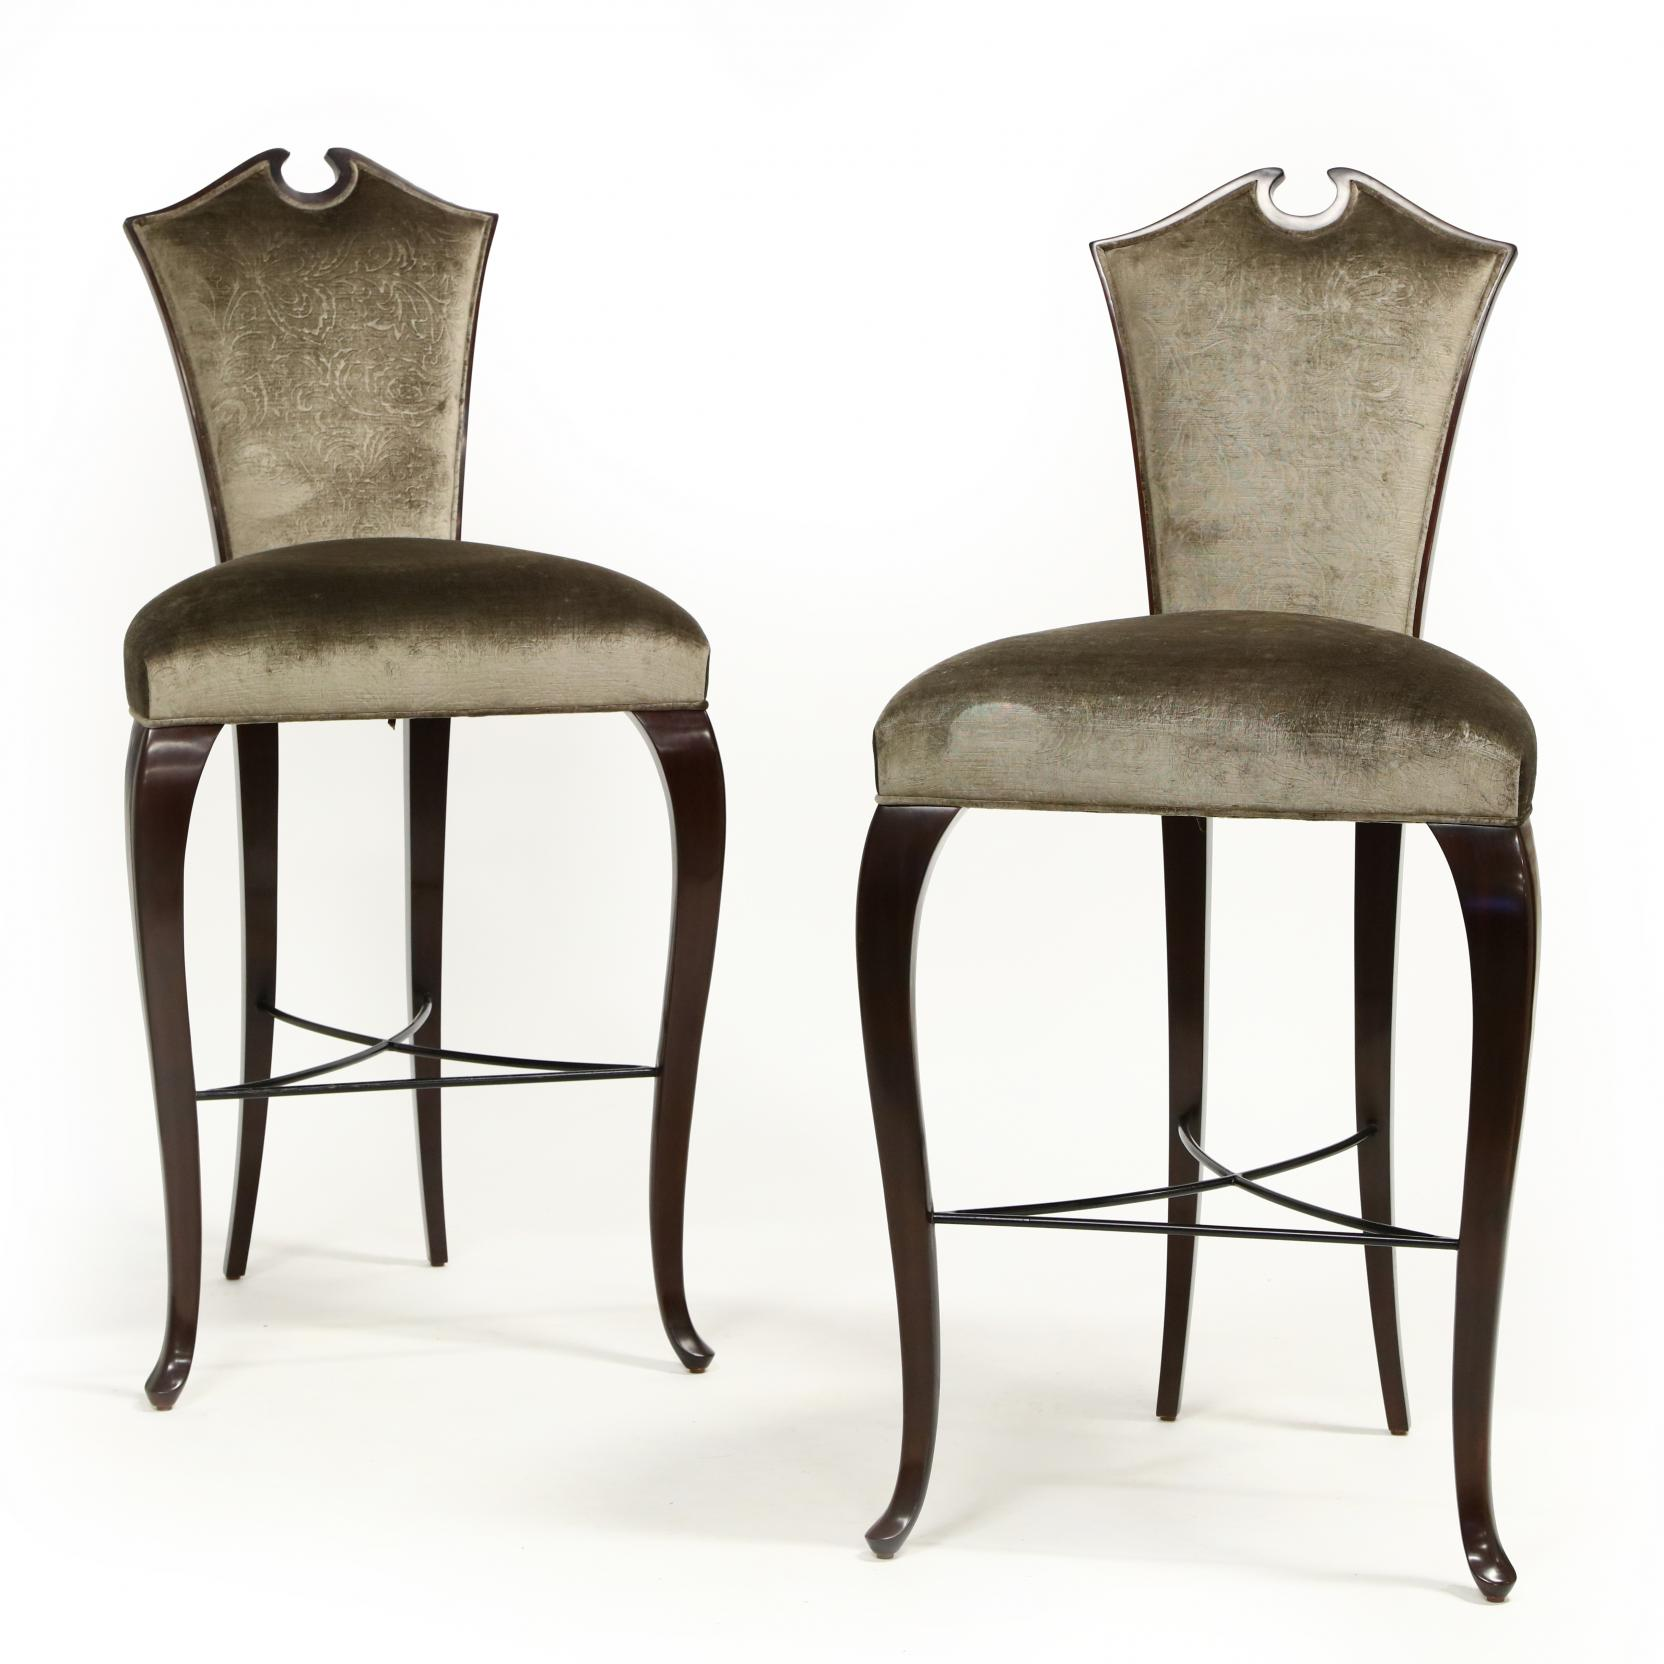 christopher-guy-pair-of-queen-anne-style-bar-stools